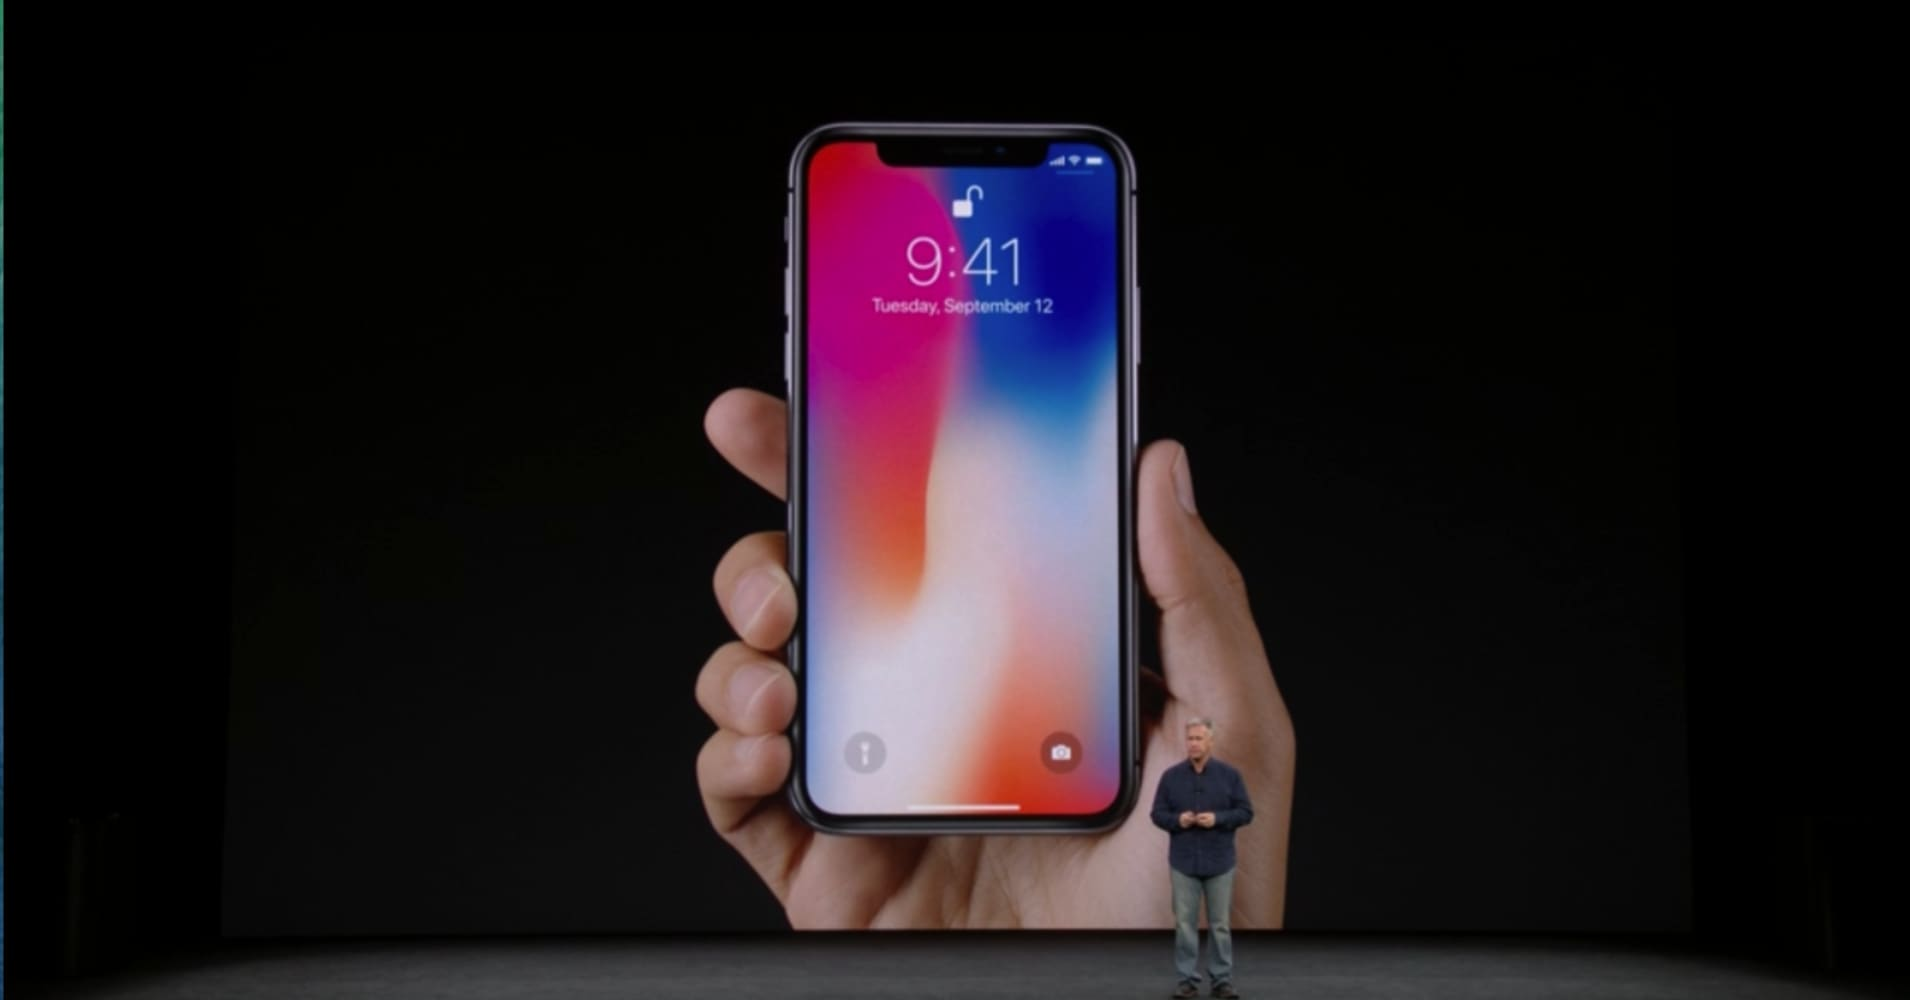 Apple stock falls on disappointment about iPhone X release date